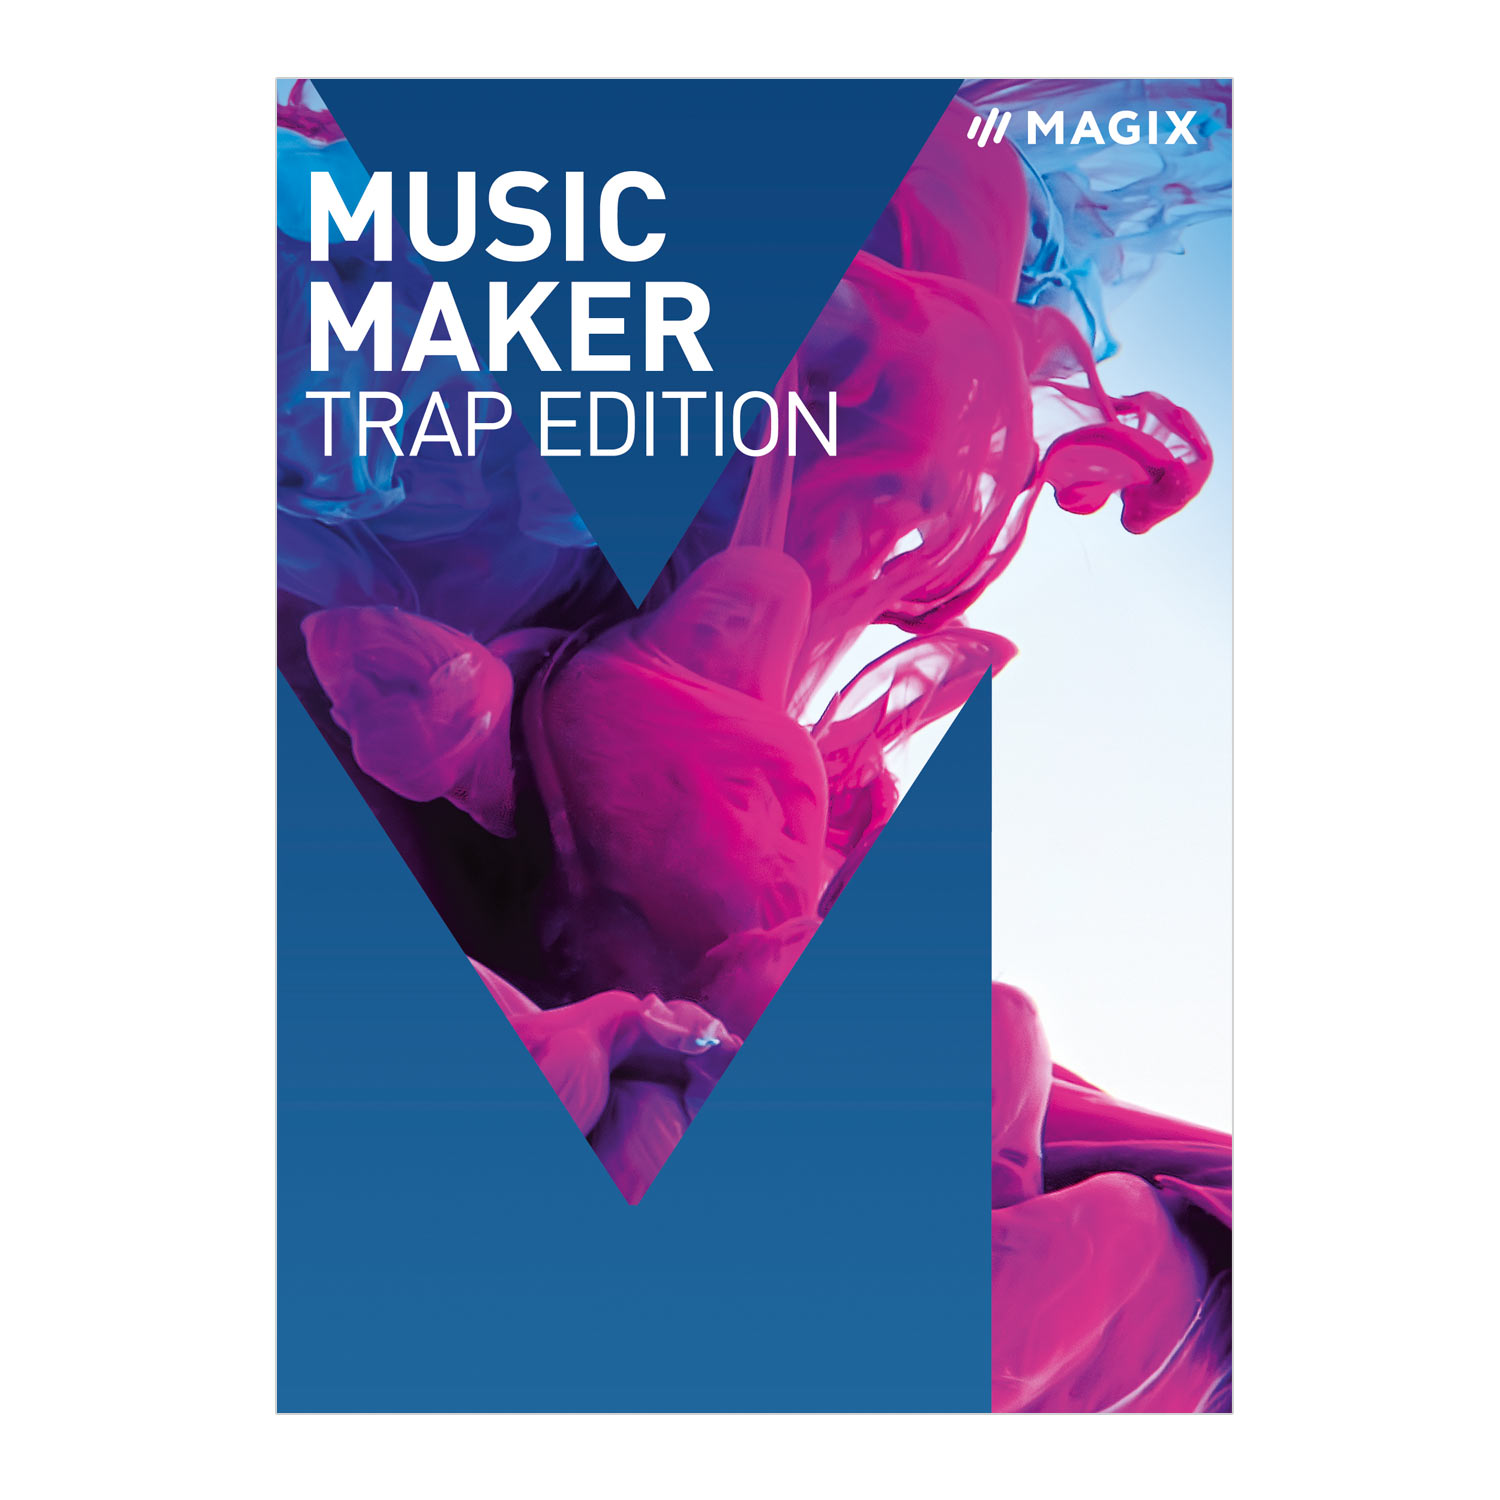 MAGIX Music Maker – Trap Edition – Make your own music – and trap beats [Download]